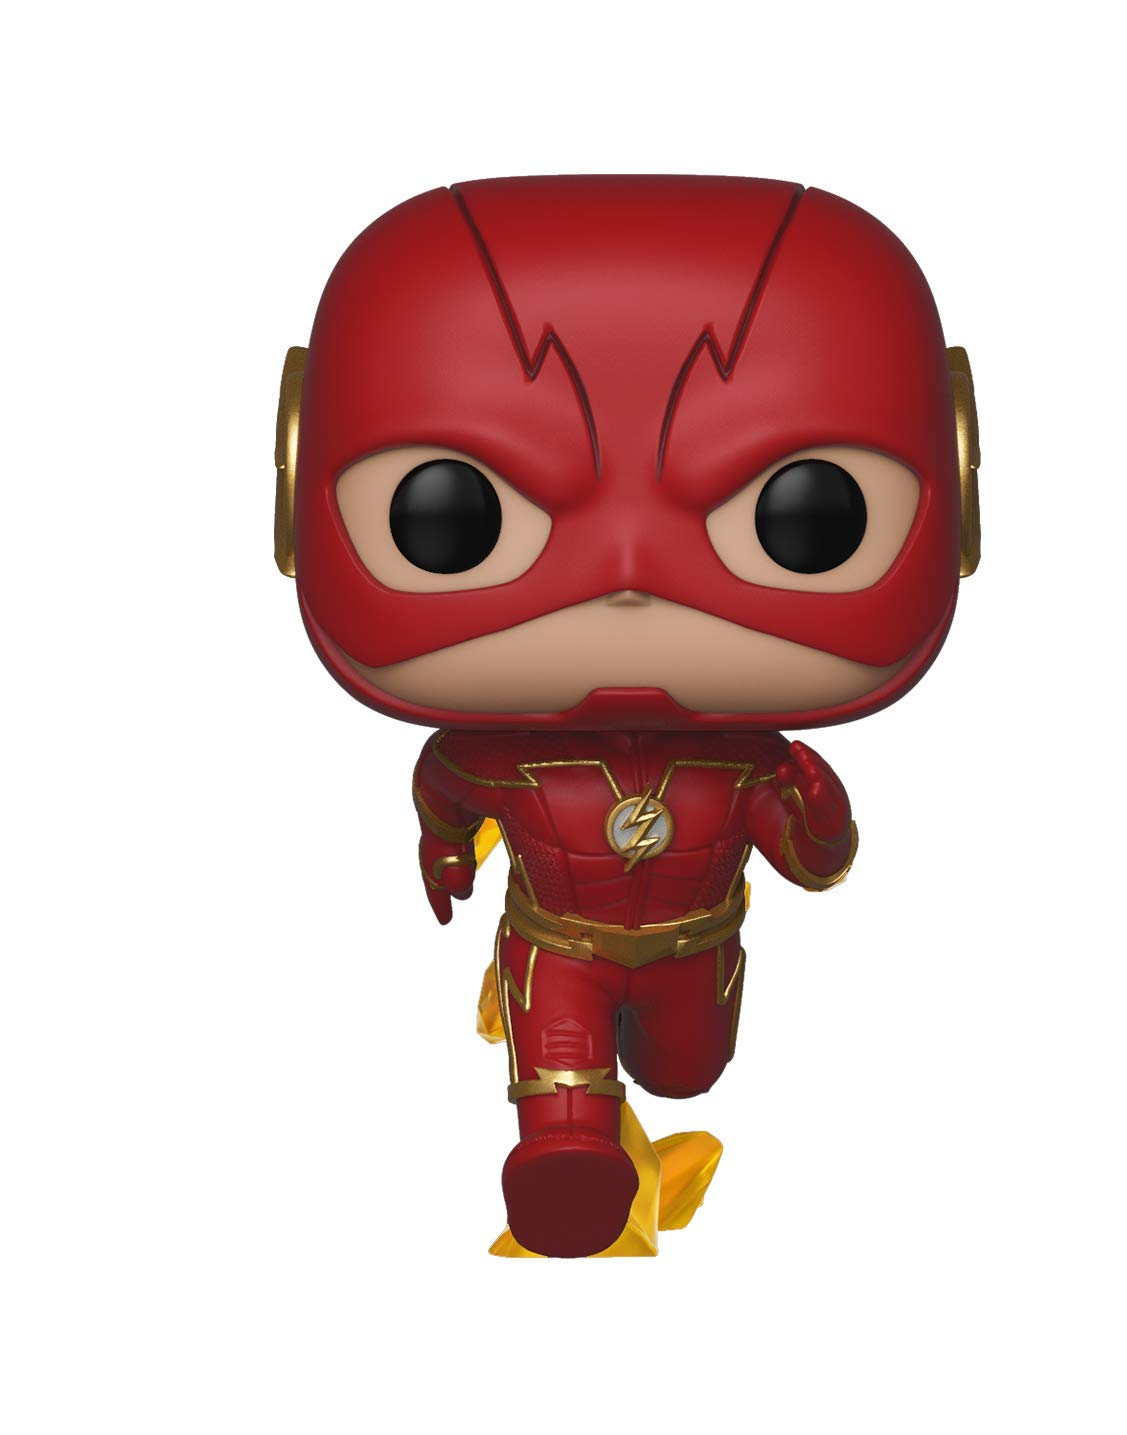 Funko Pop Television: The Flash - Flash Collectible Figure, Multicolor 32116